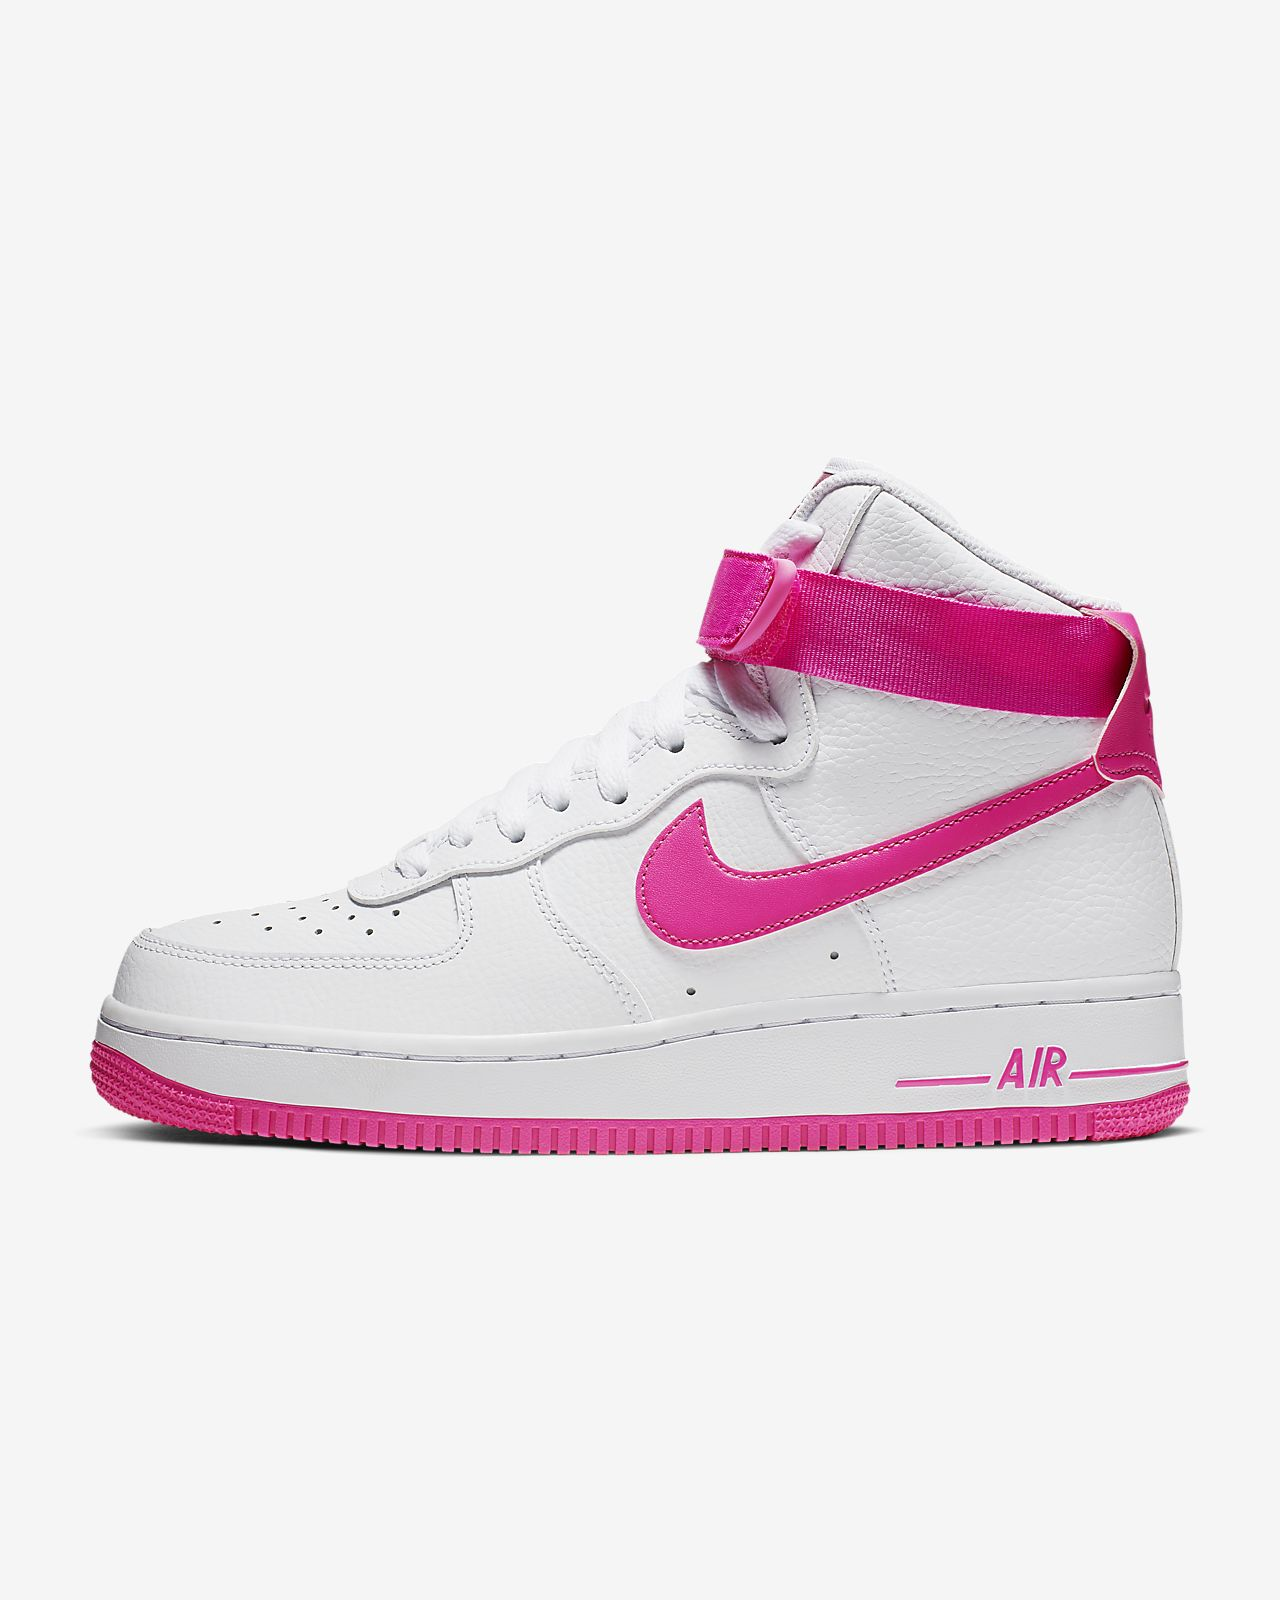 Nike Air Force 1 High 08 LE Damesschoen